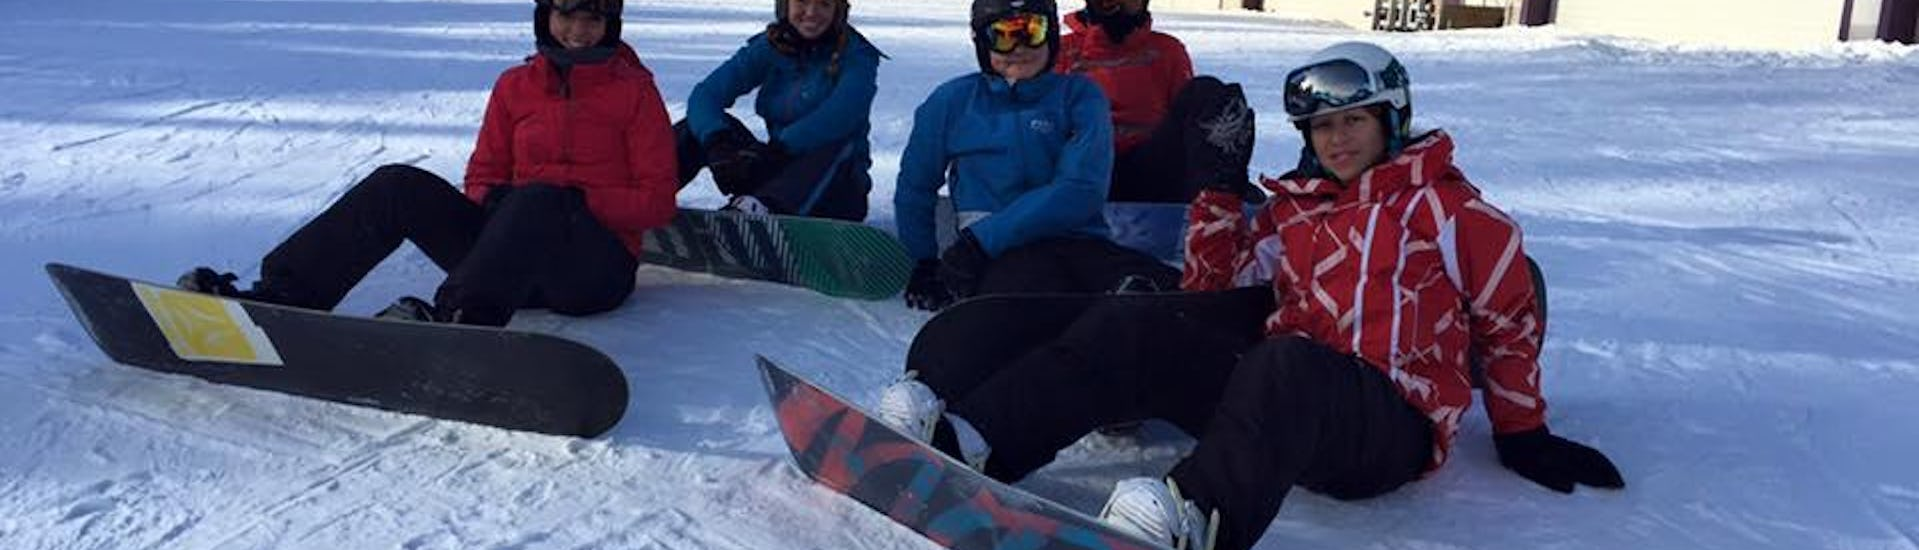 Group of snowboarders sitting in the snow